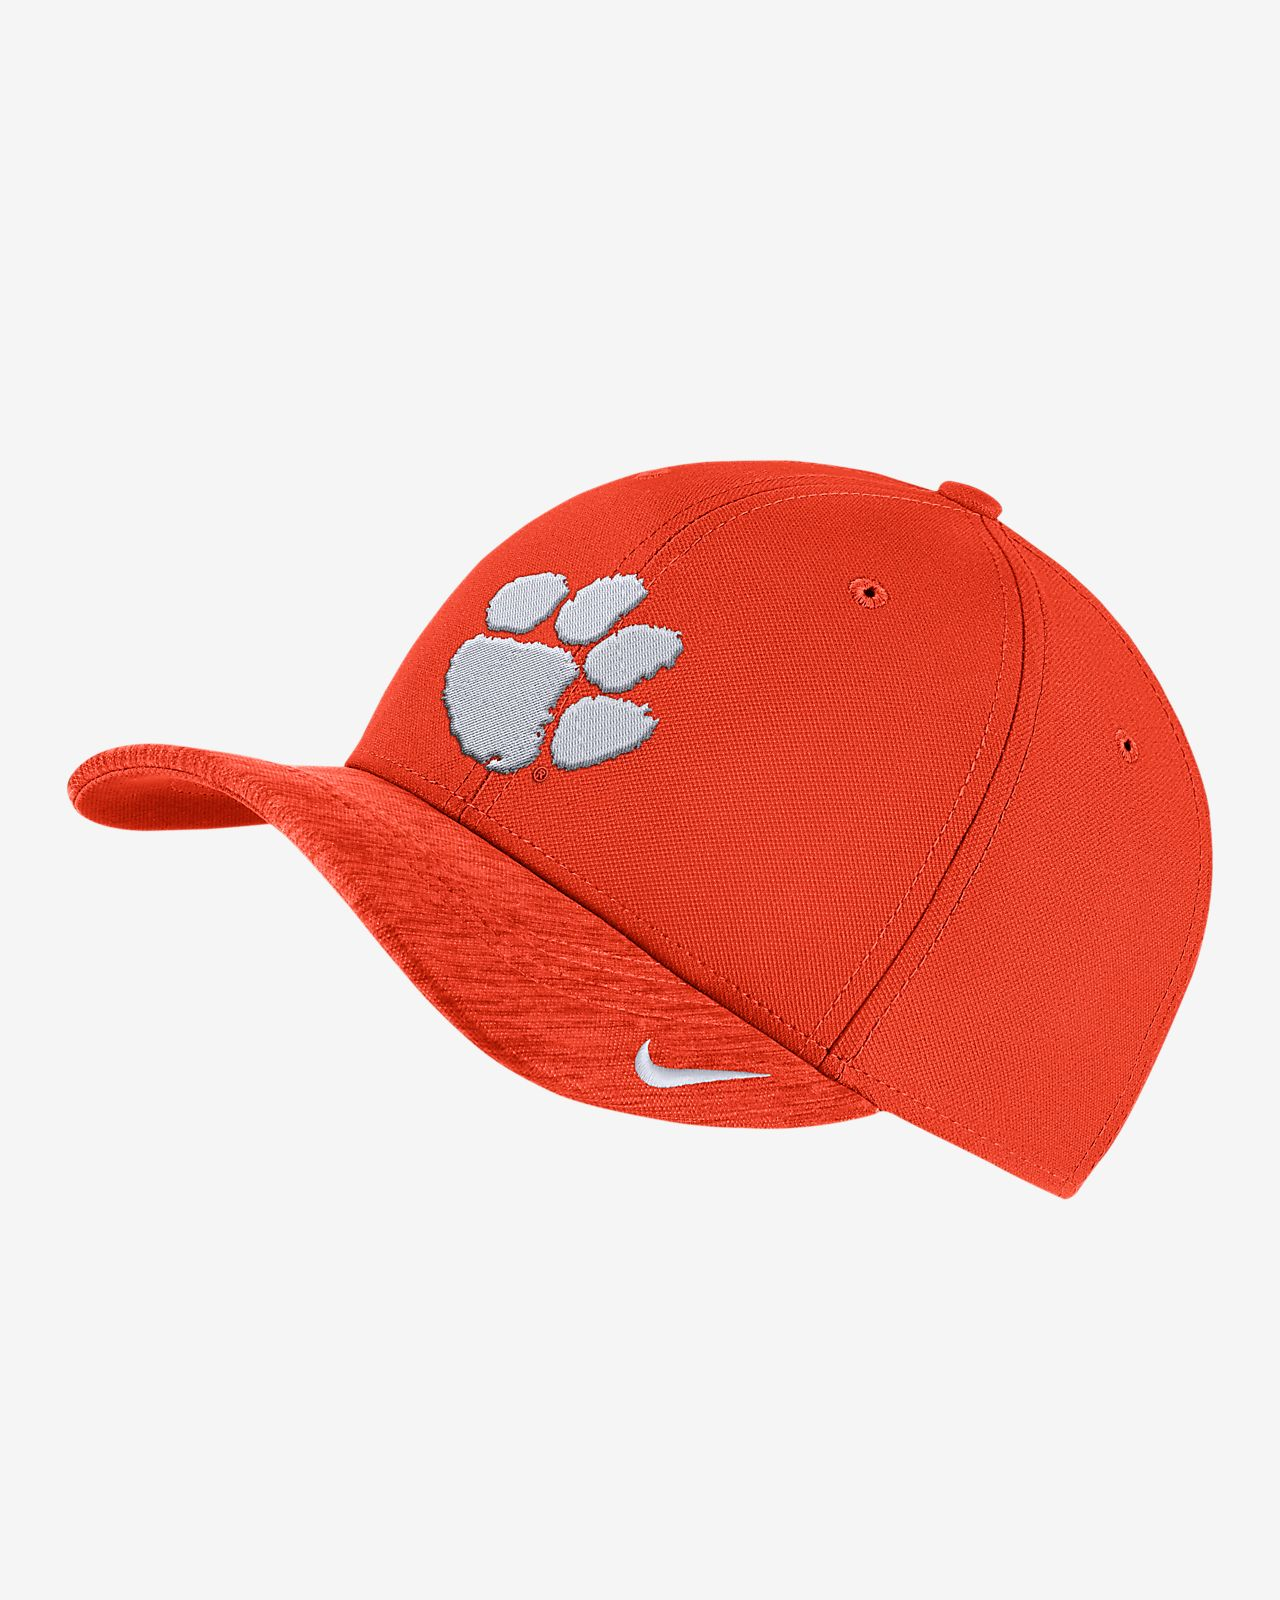 c970e3caa4d81 ... clearance nike college aerobill classic99 clemson fitted hat 12e4b 97a81